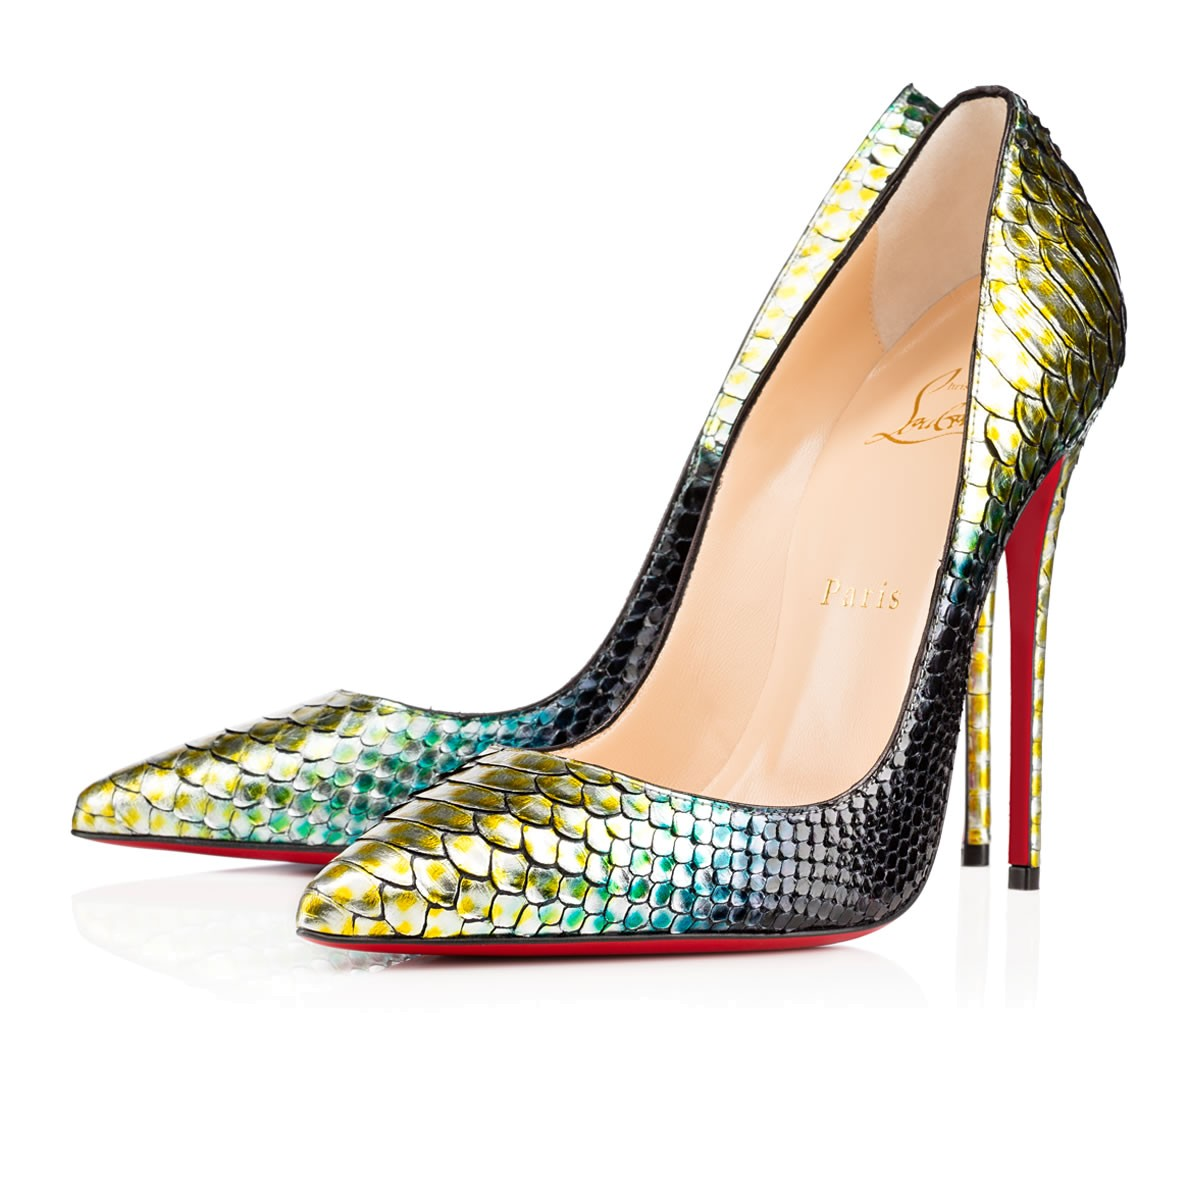 CHRISTIAN LOUBOUTIN So Kate Python Mermaid Red Sole Pump in Mimosa